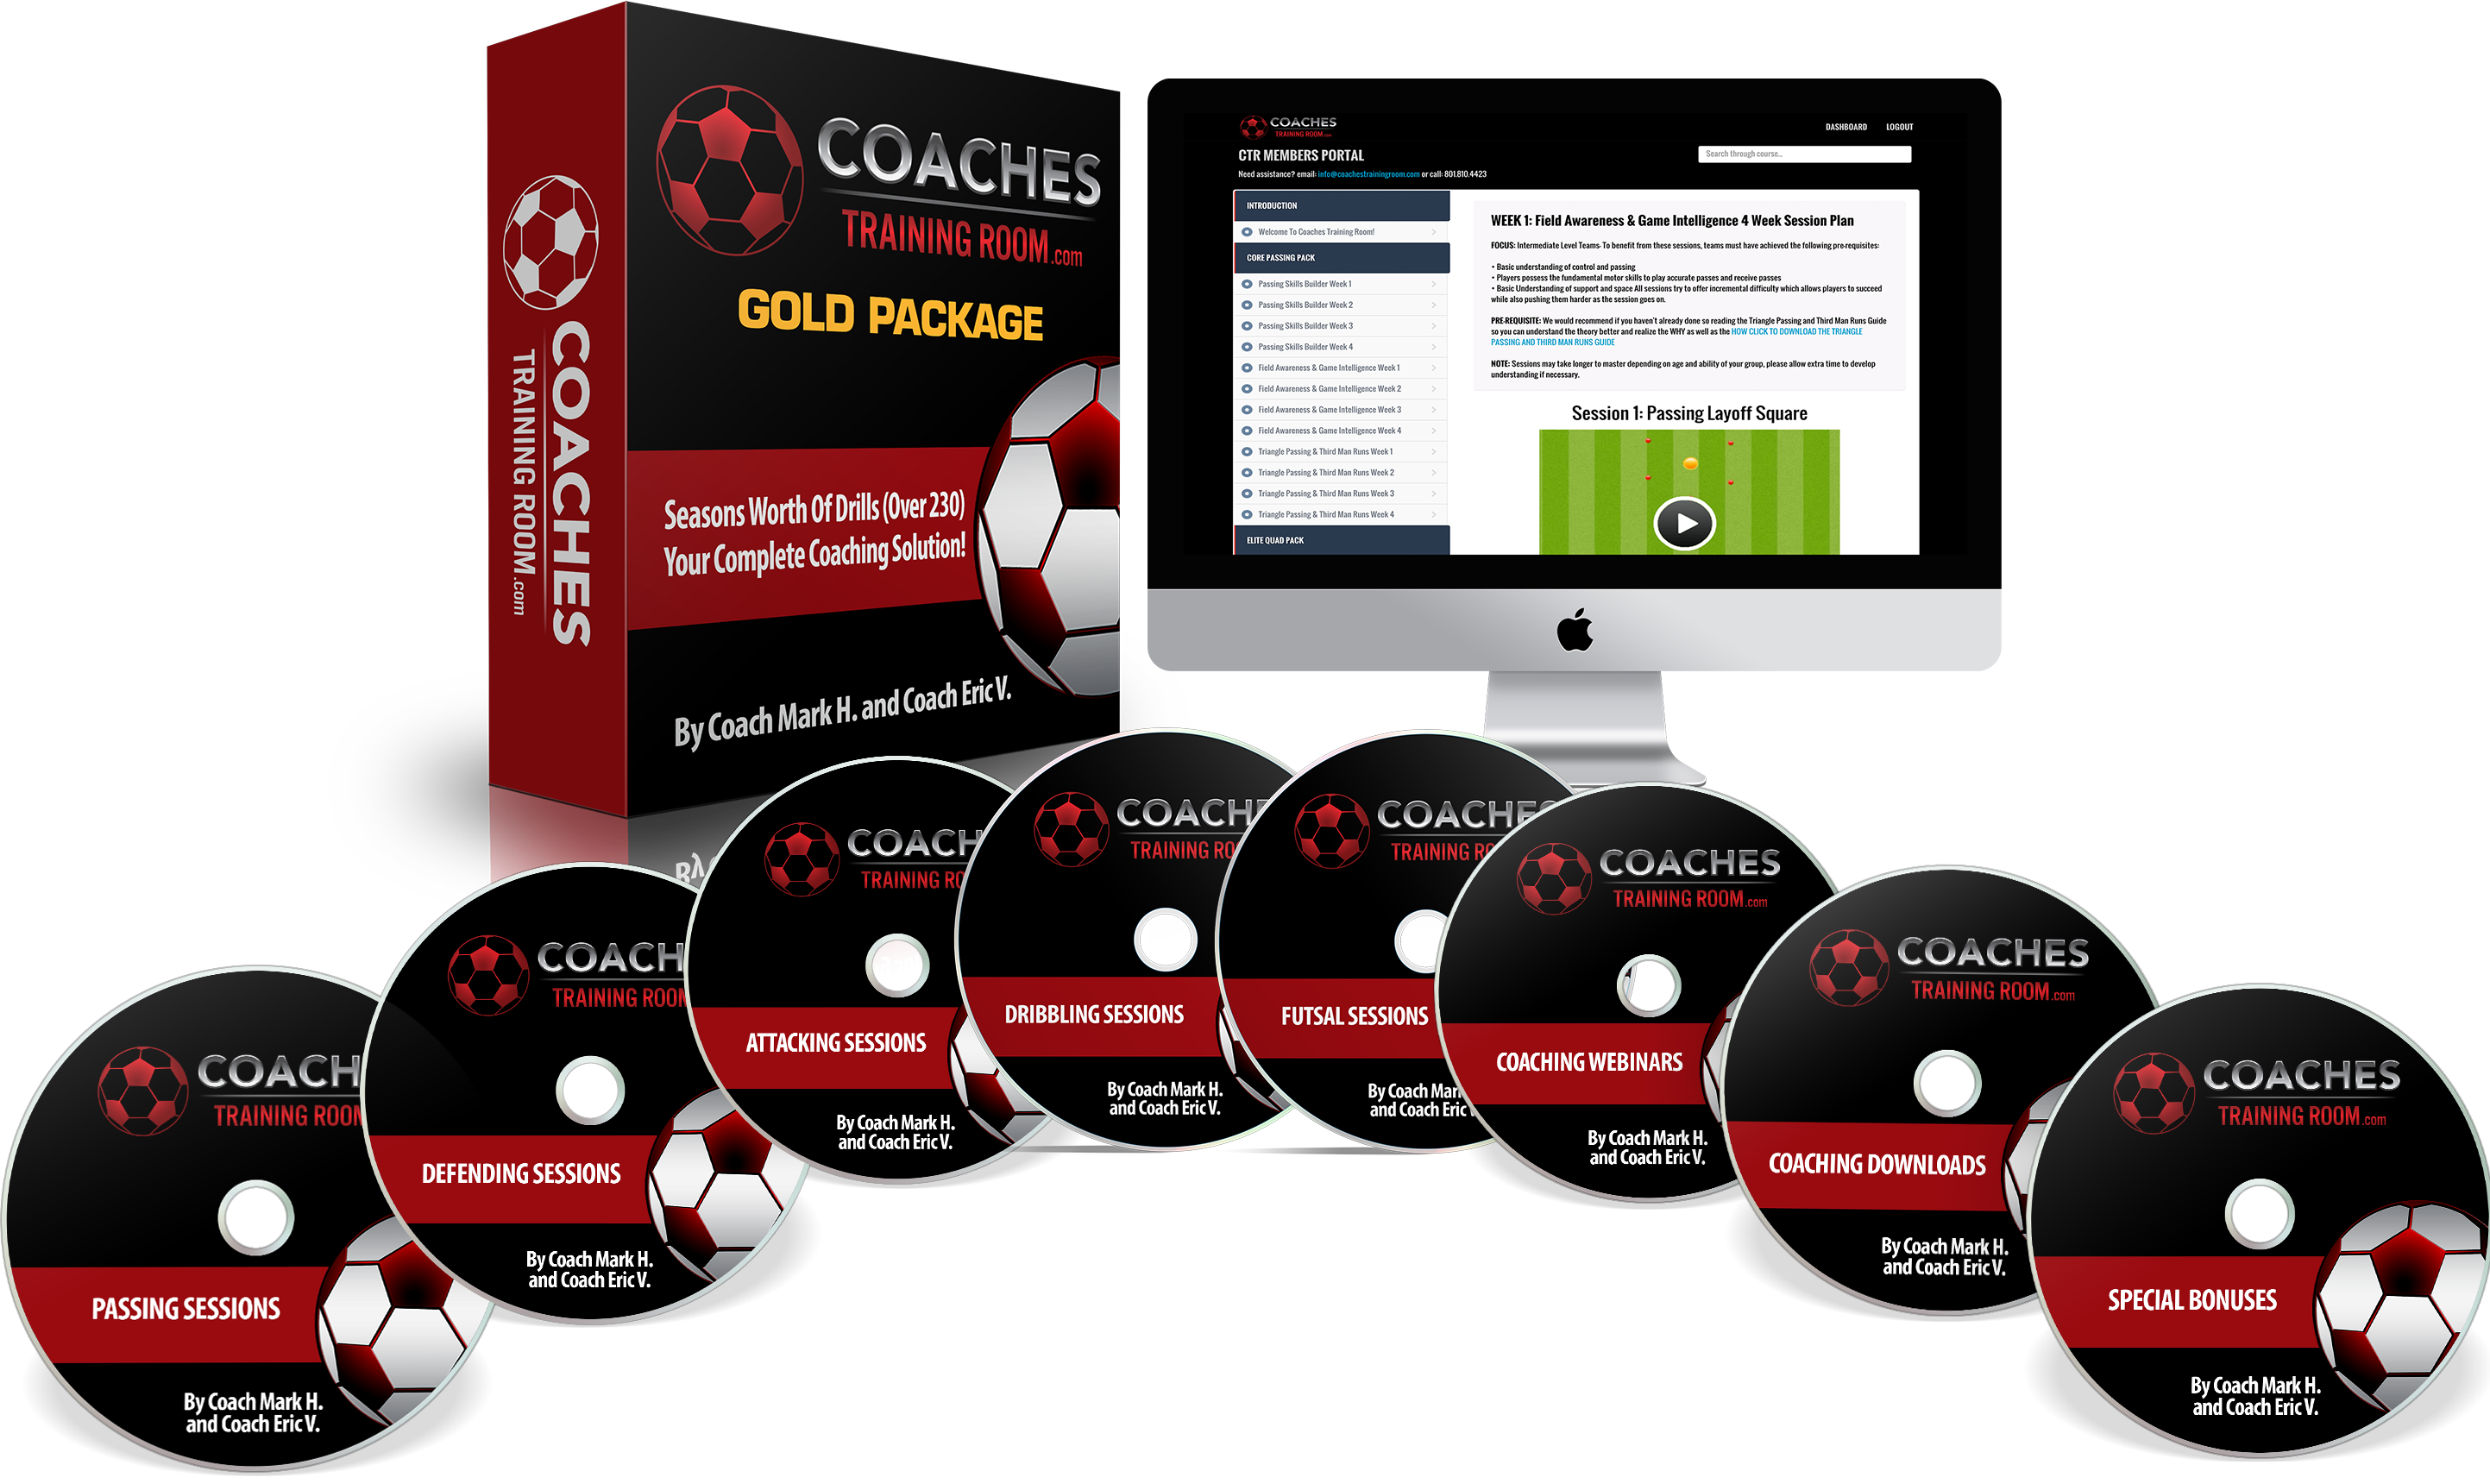 Coaches Training Room Gold Session Pack